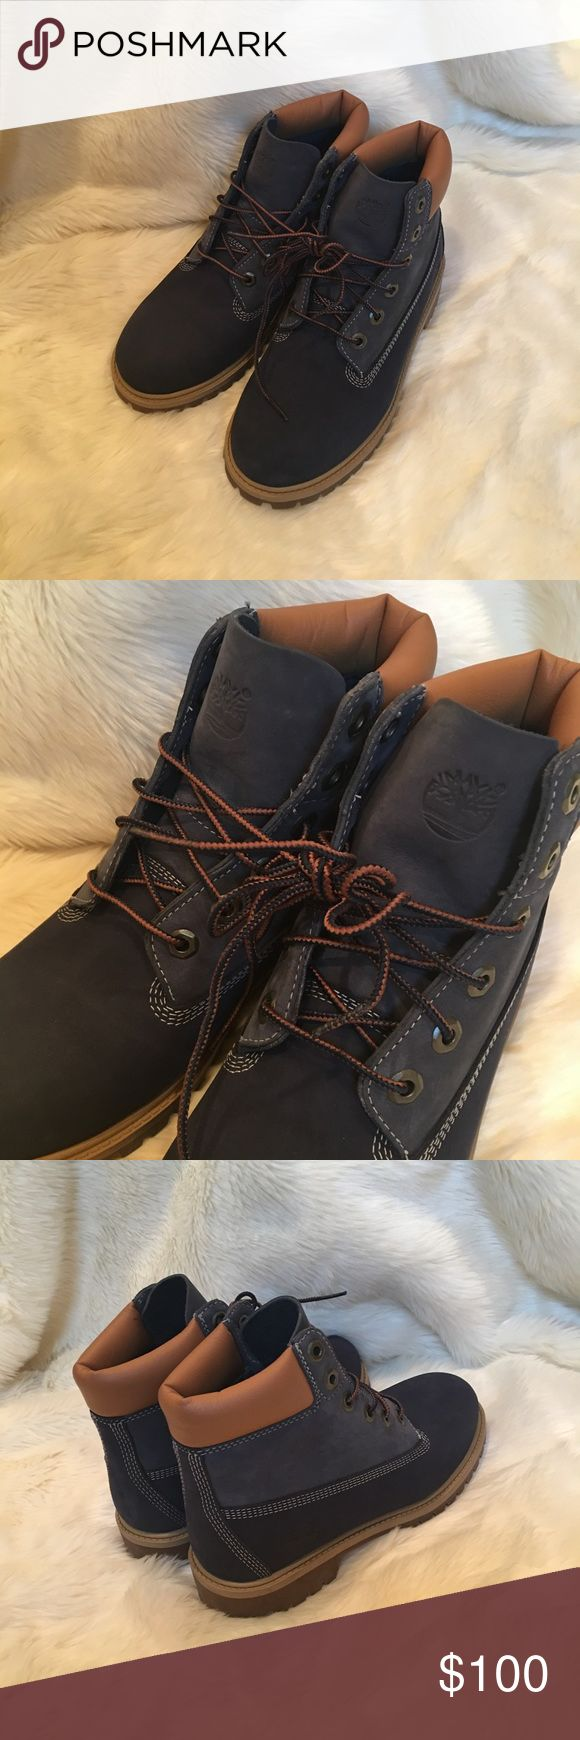 BLUE Timberland waterproof boots Men's size 5 fit like a women's 7, never worn in perfect condition! Timberland Shoes Boots